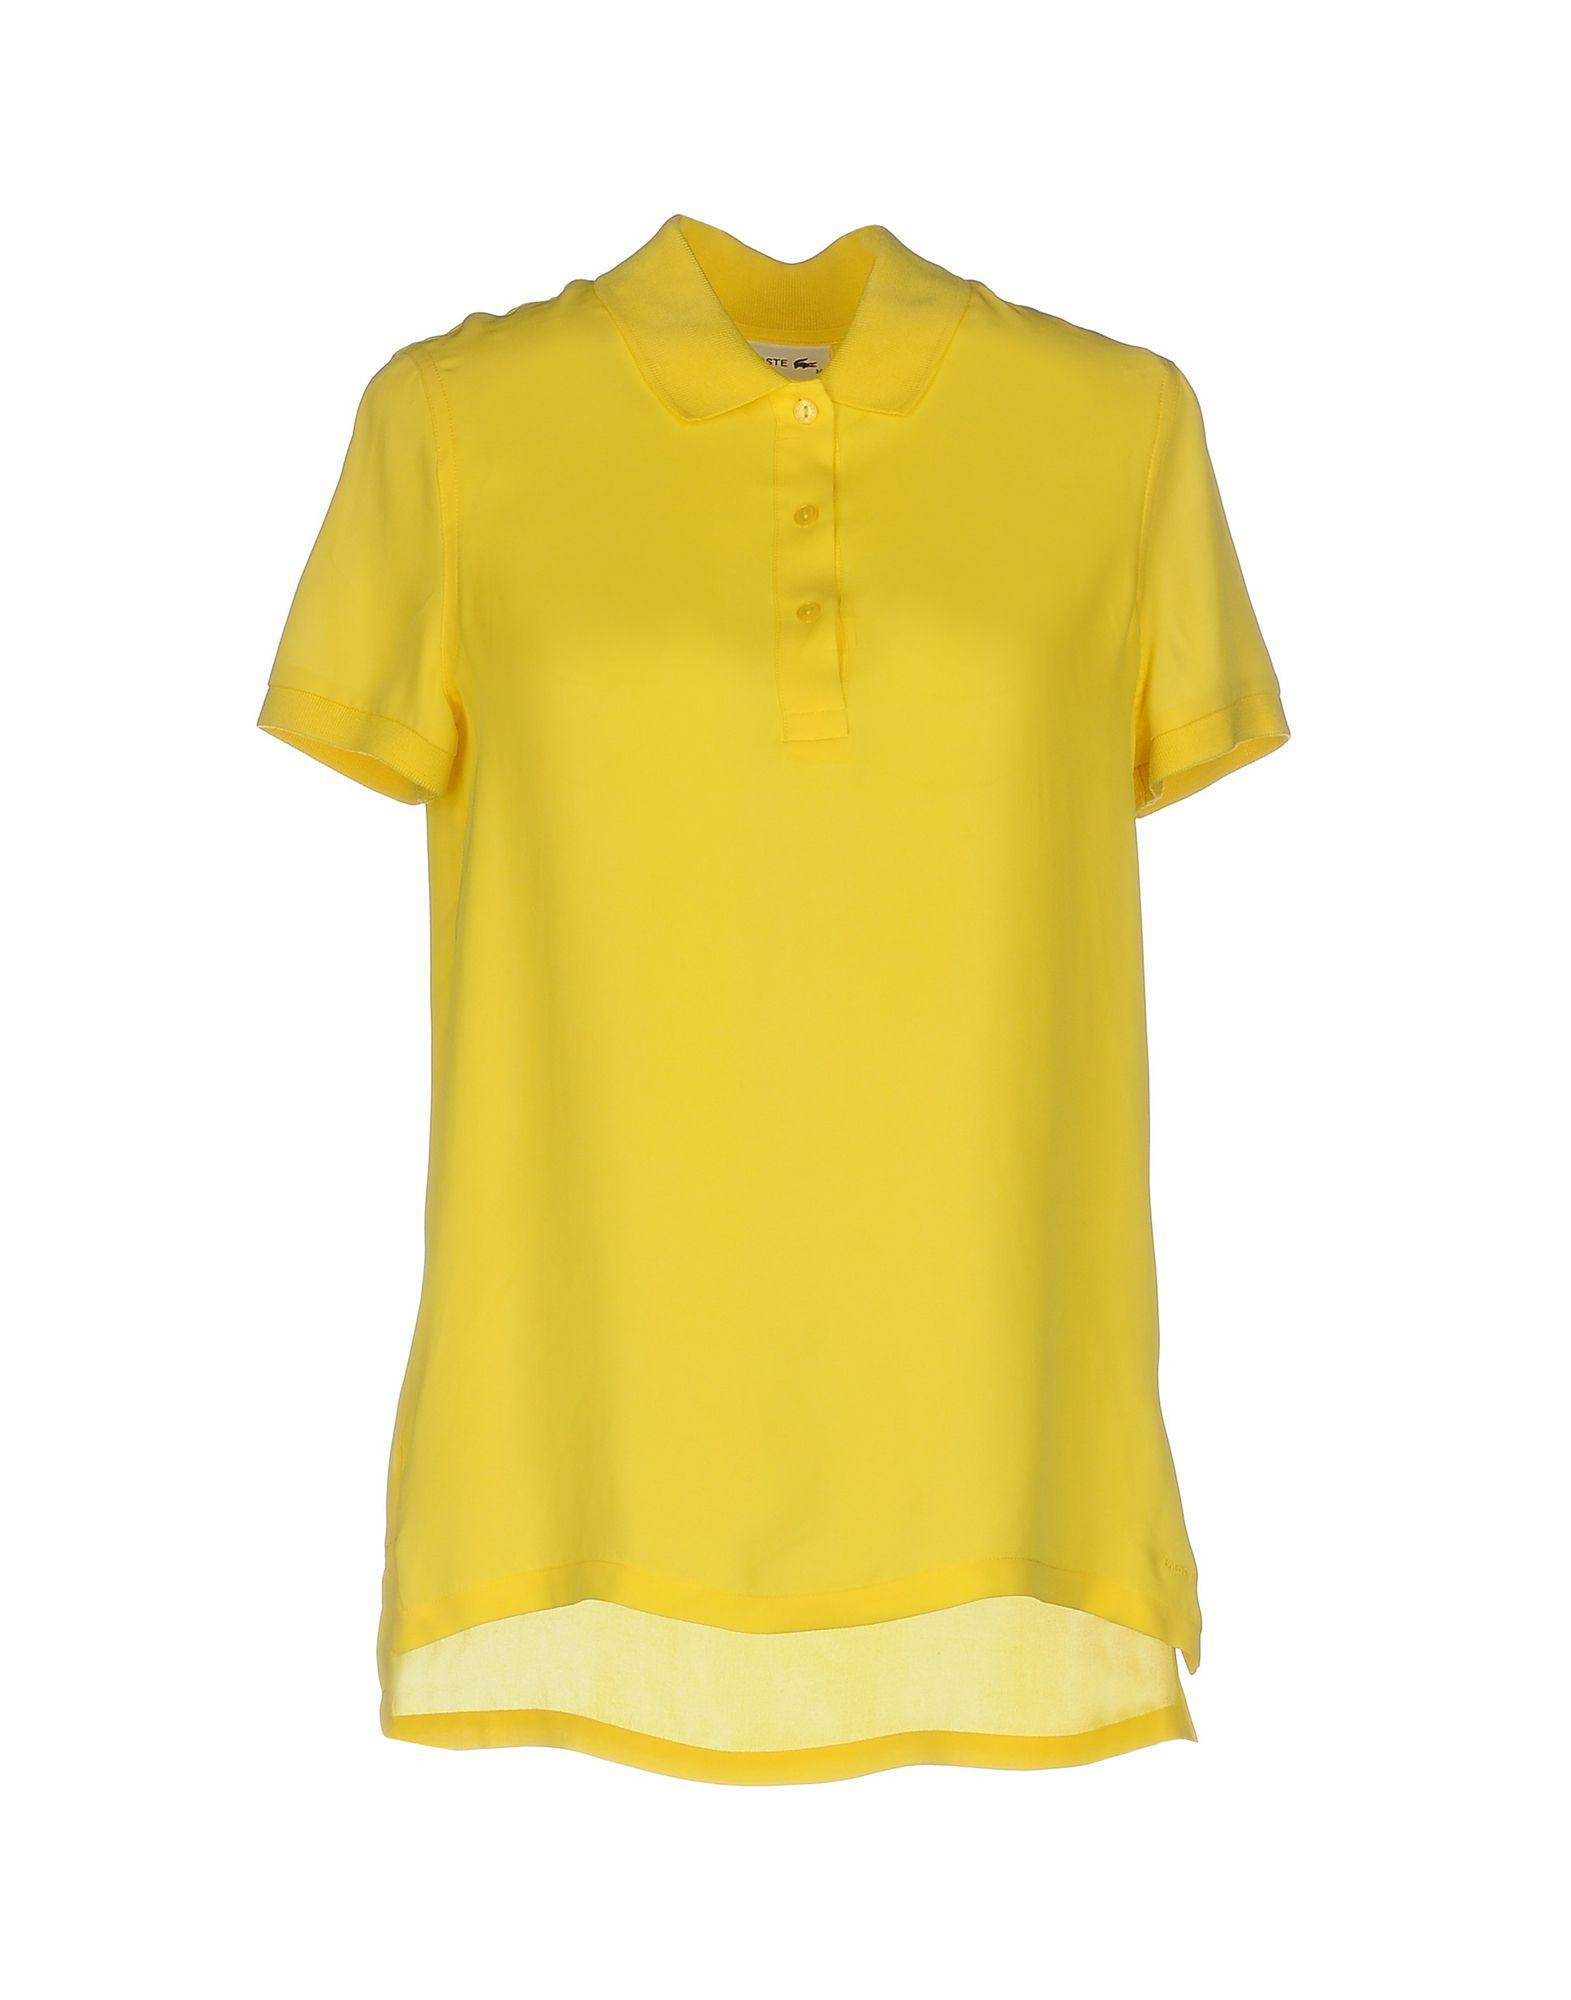 4726d8ac0 Where To Buy Lacoste Polo Shirts In The Philippines